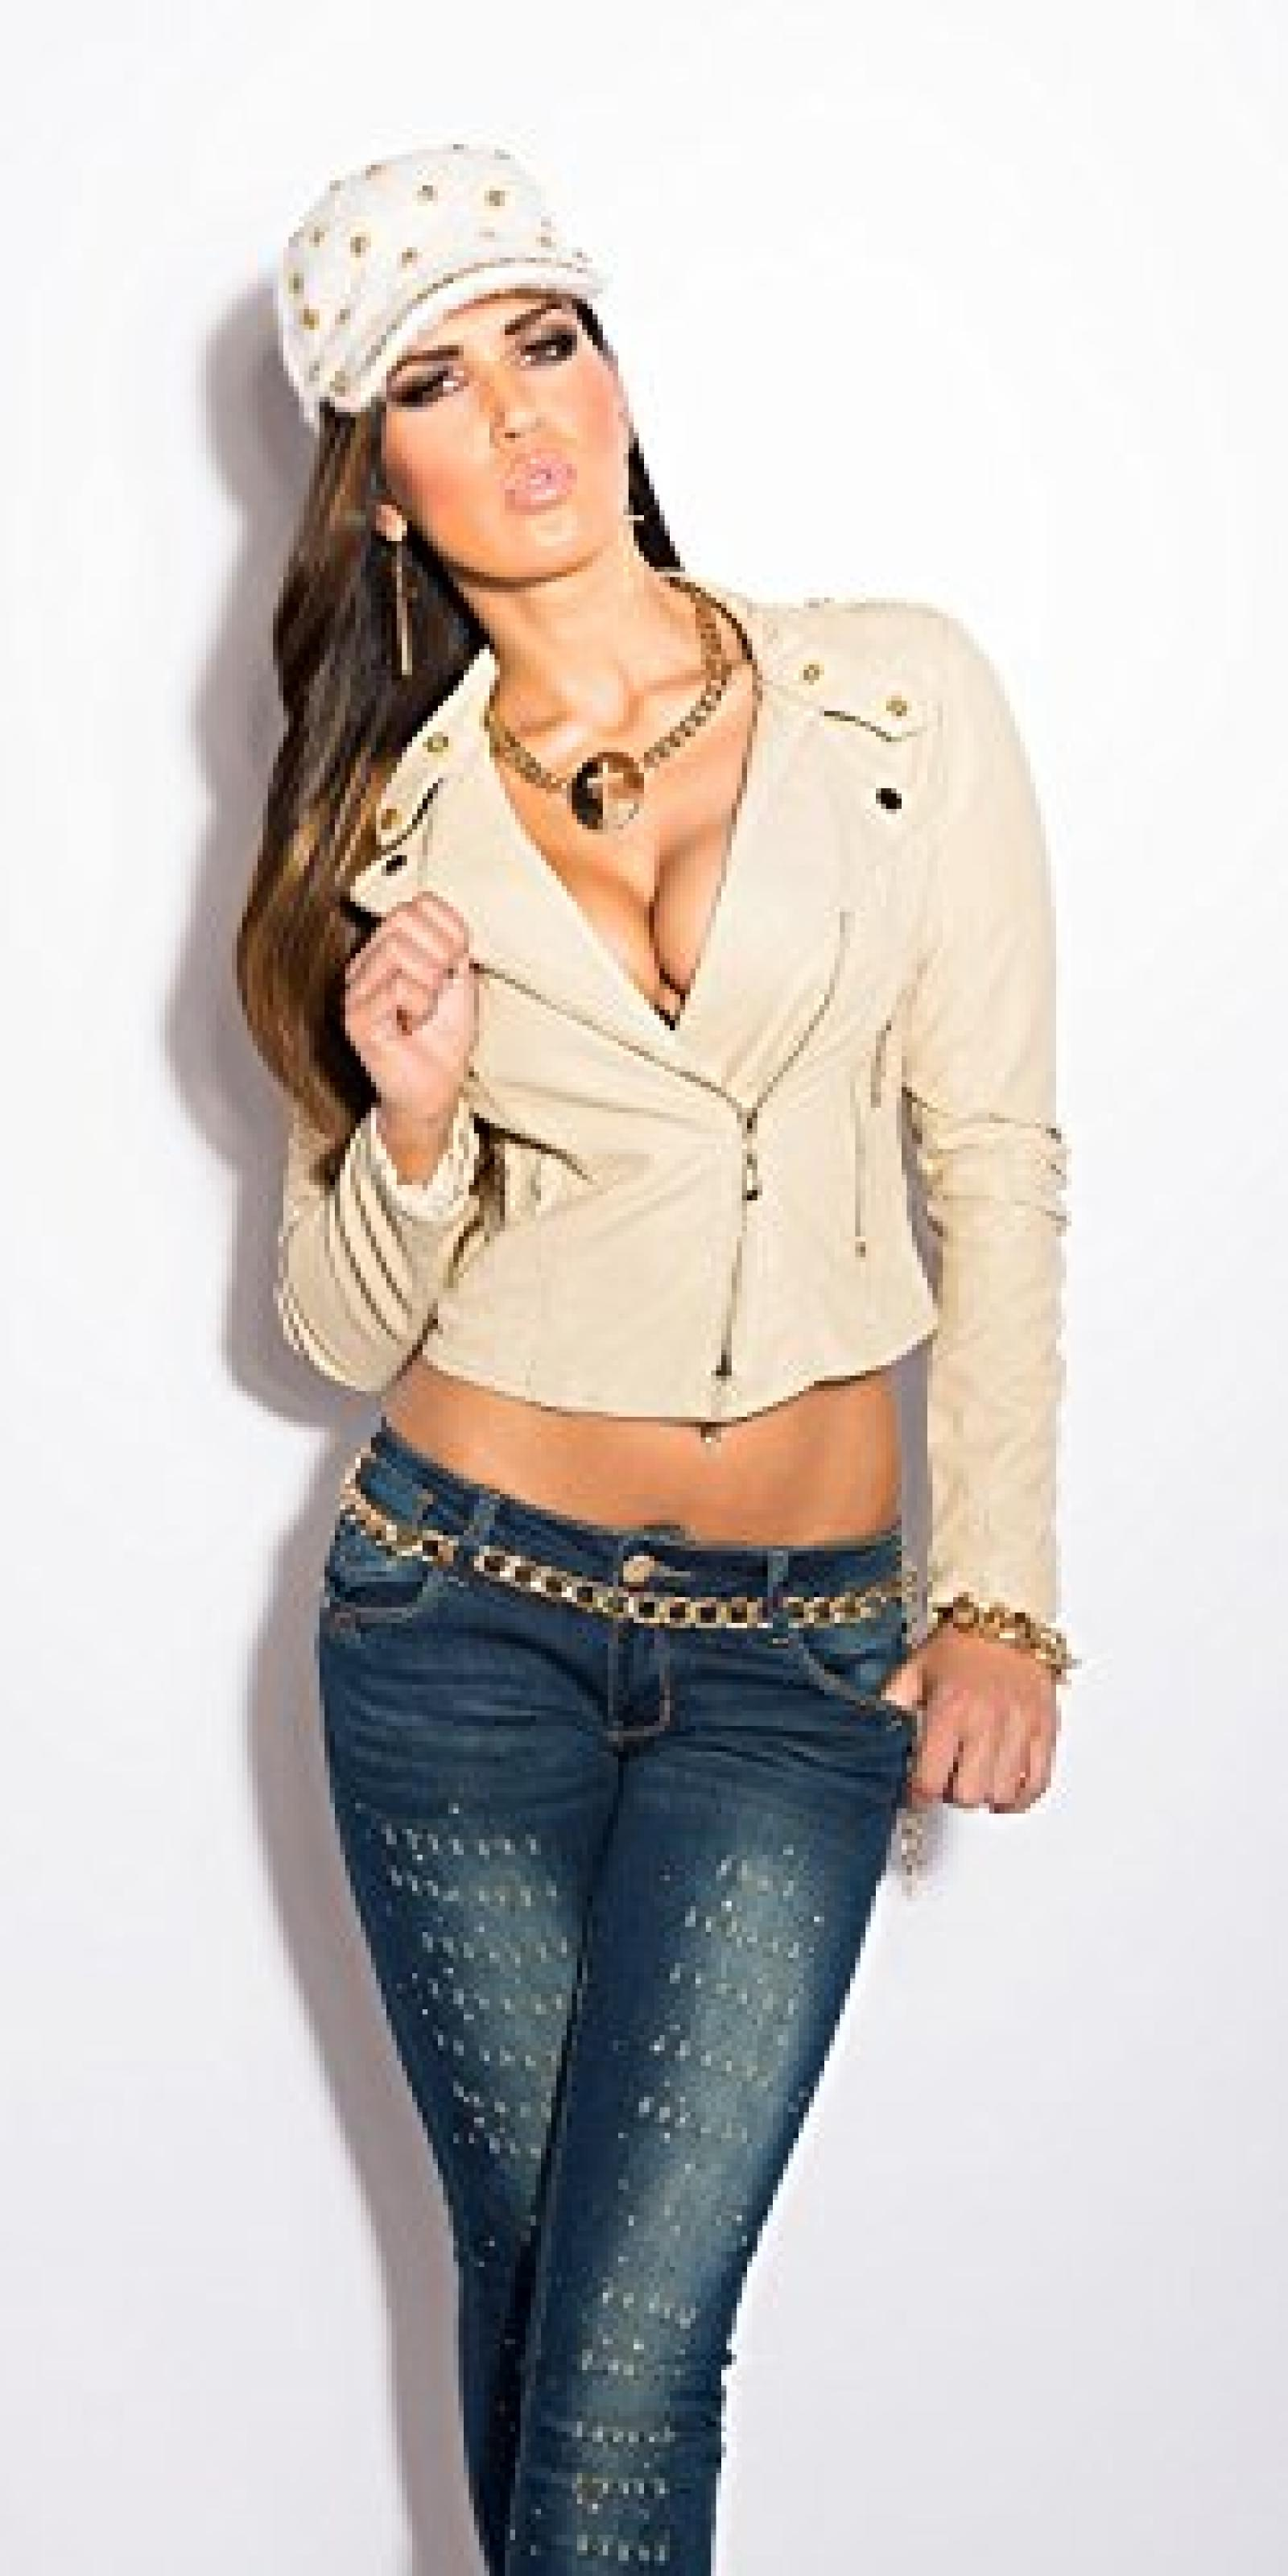 Sexy bikerjacket in leatherlook Koucla by In-Stylefashion SKU 0000LM161607 / Color: BEIGE, Size: S